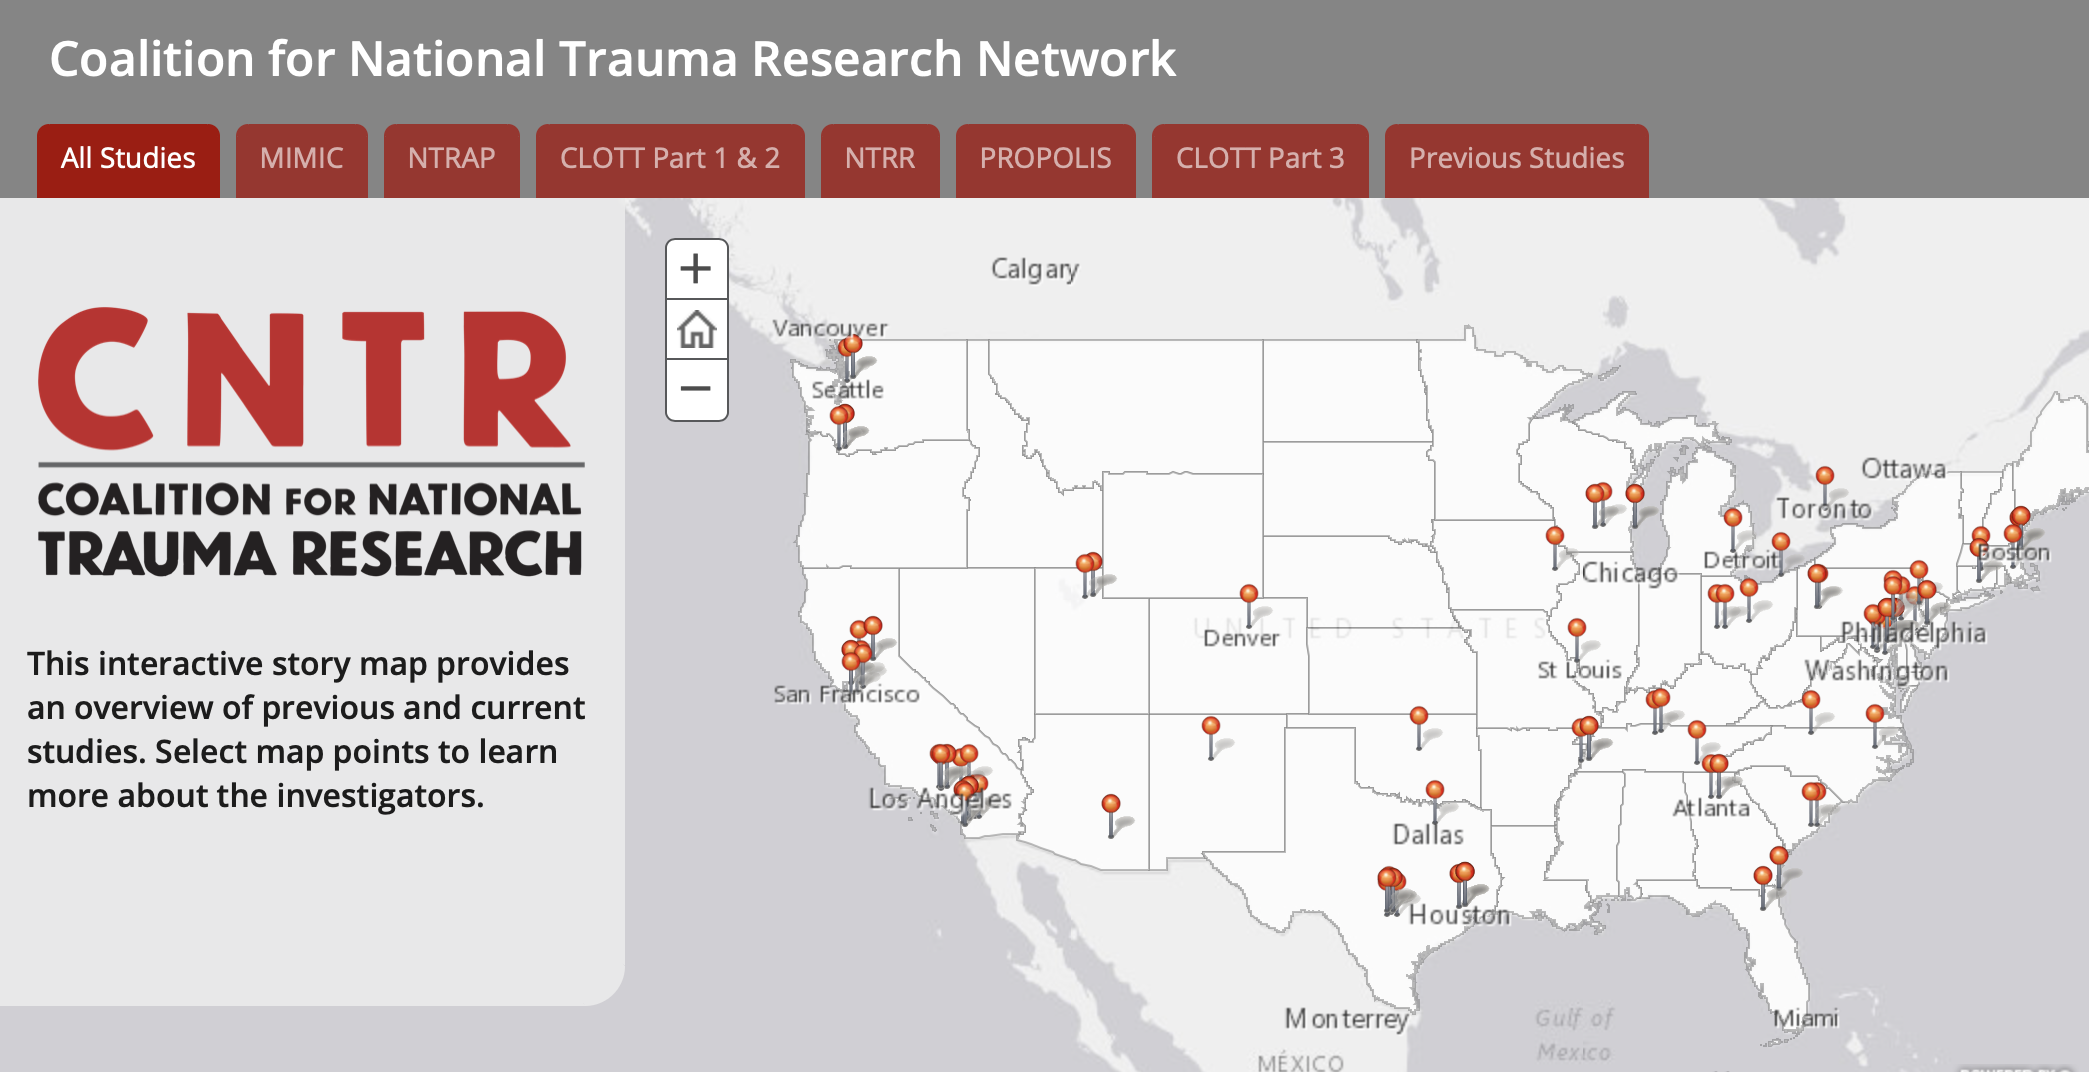 Coalition for National Trauma Research